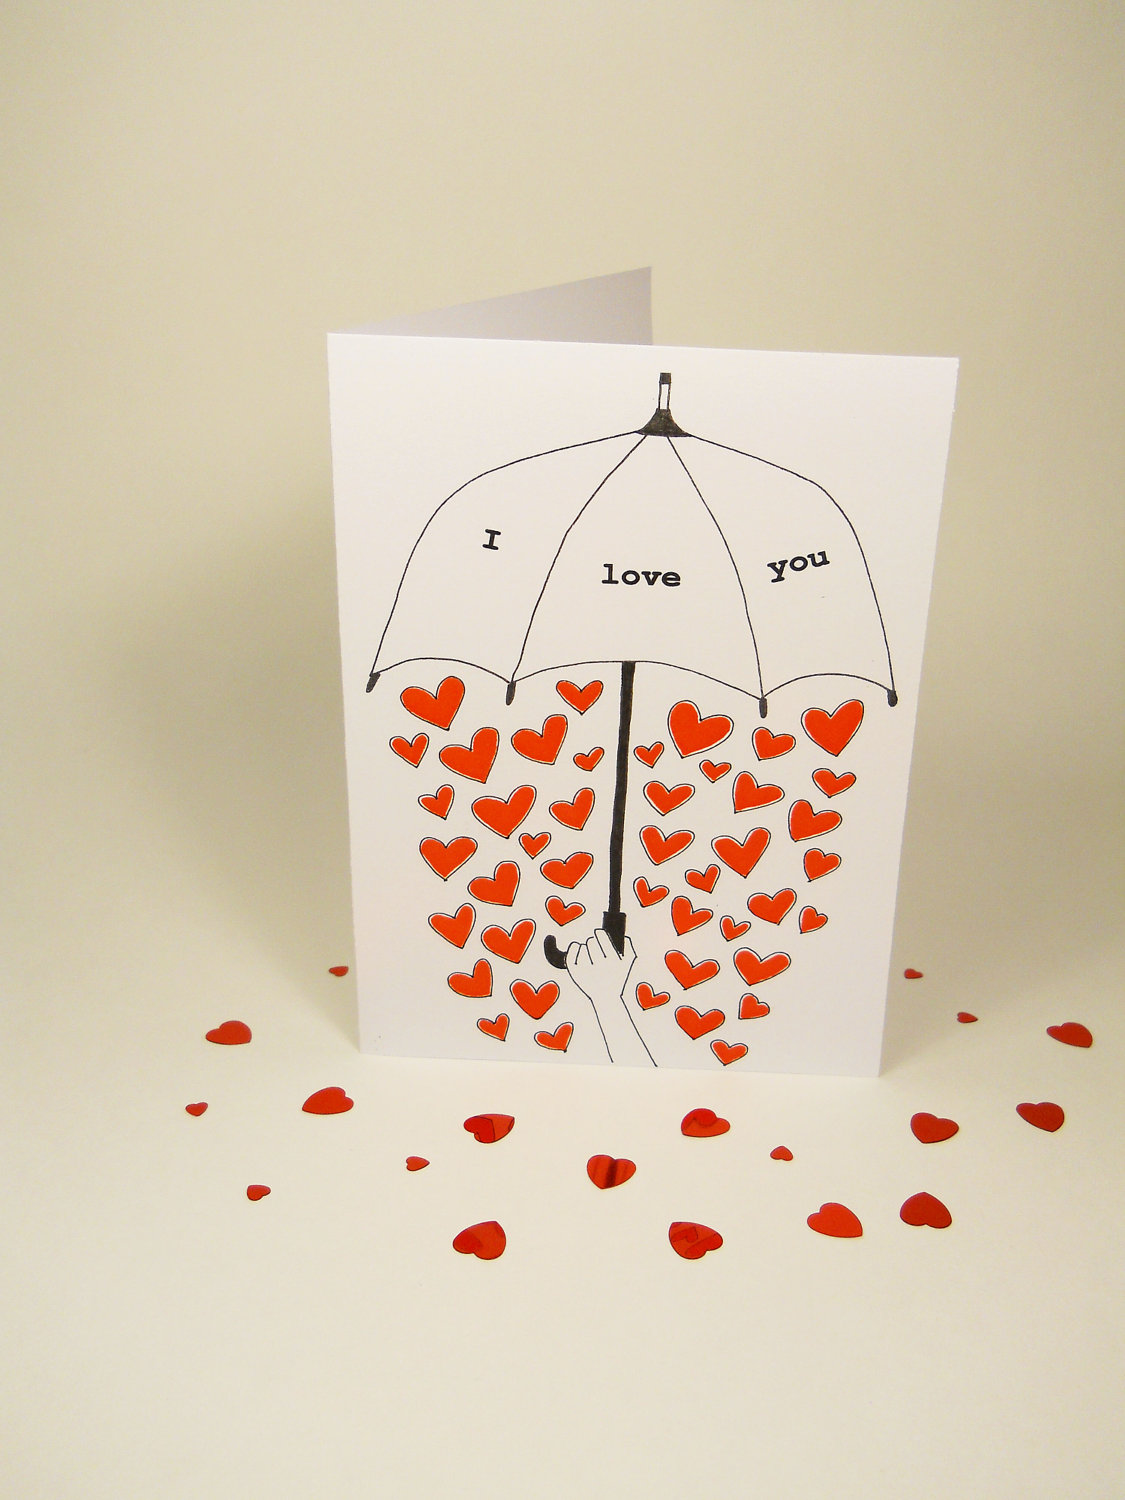 Drawn cards floral wedding I card you Day Love